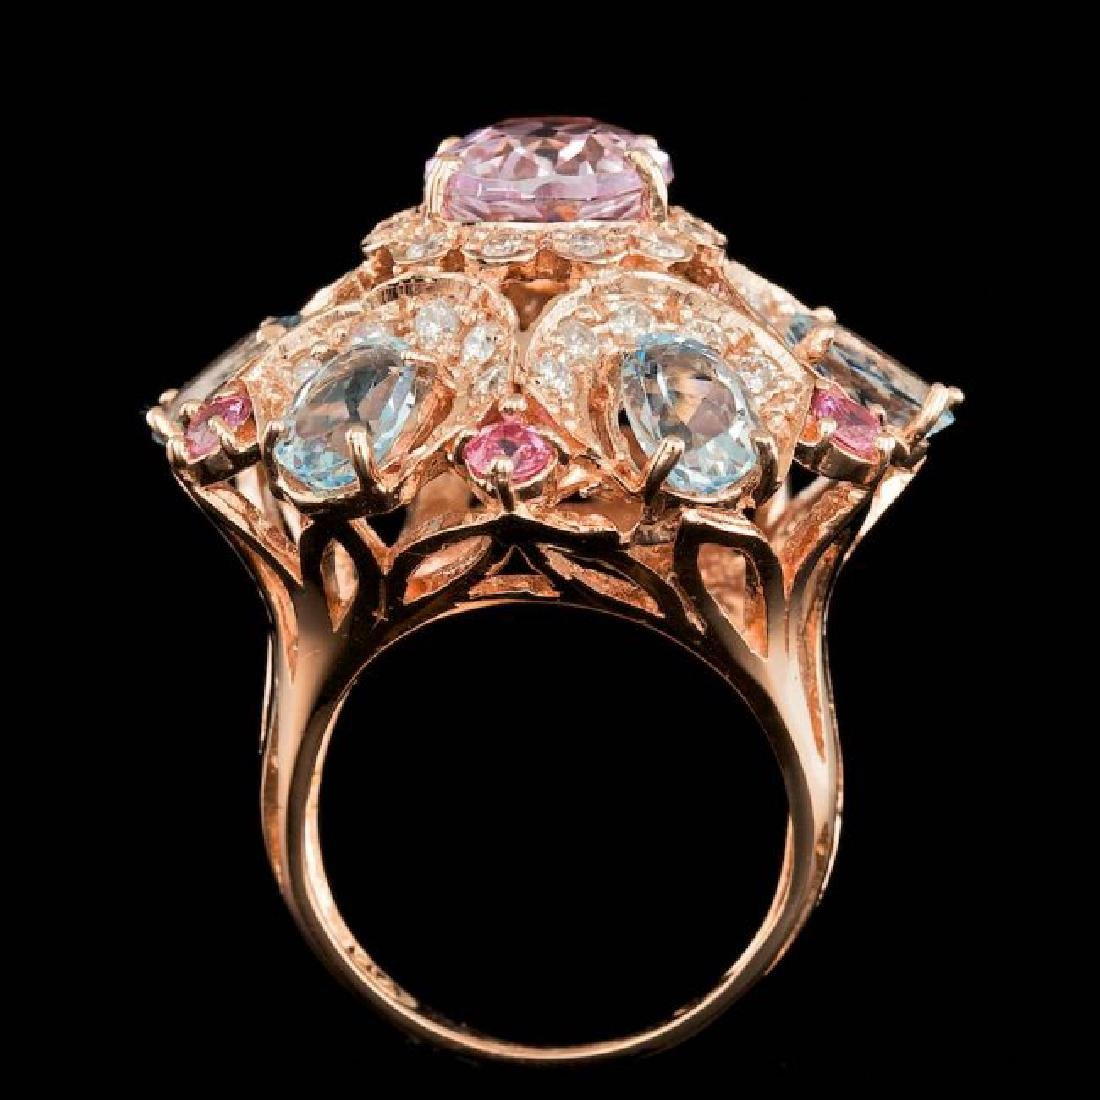 14k Rose Gold 3.50ct Kunzite 1.25ct Diamond Ring - 4